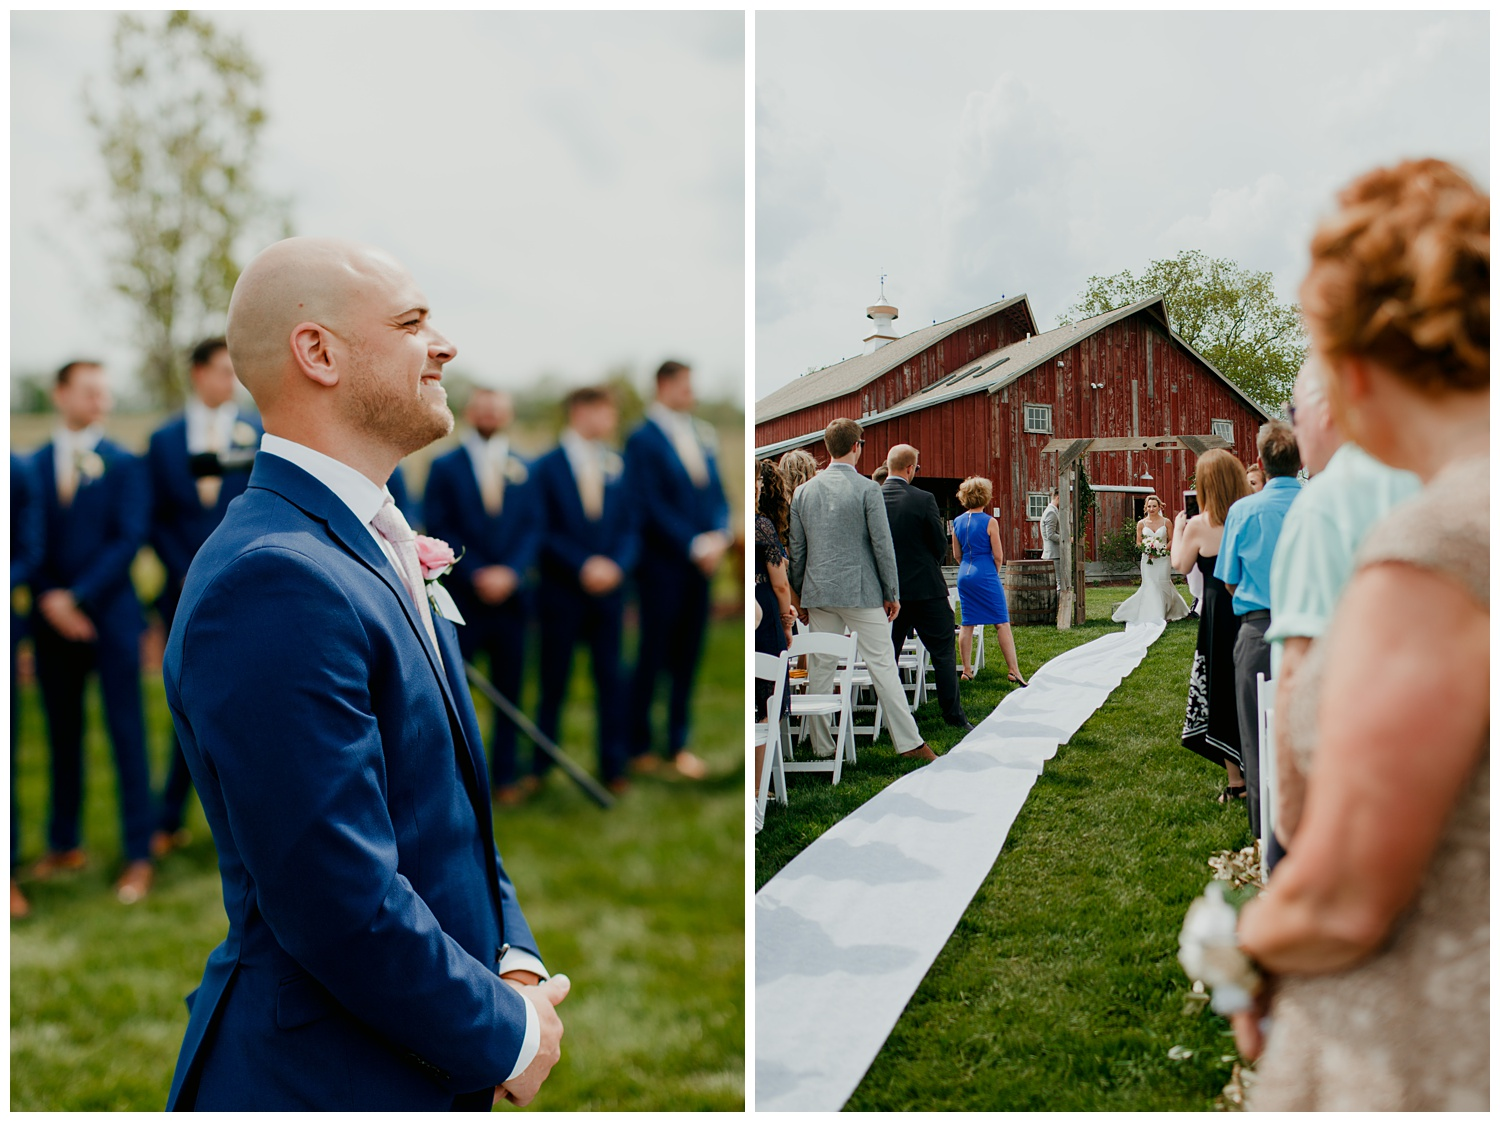 blissfulbarn threeoaks michigan wedding photography journeymandistillery55.jpg